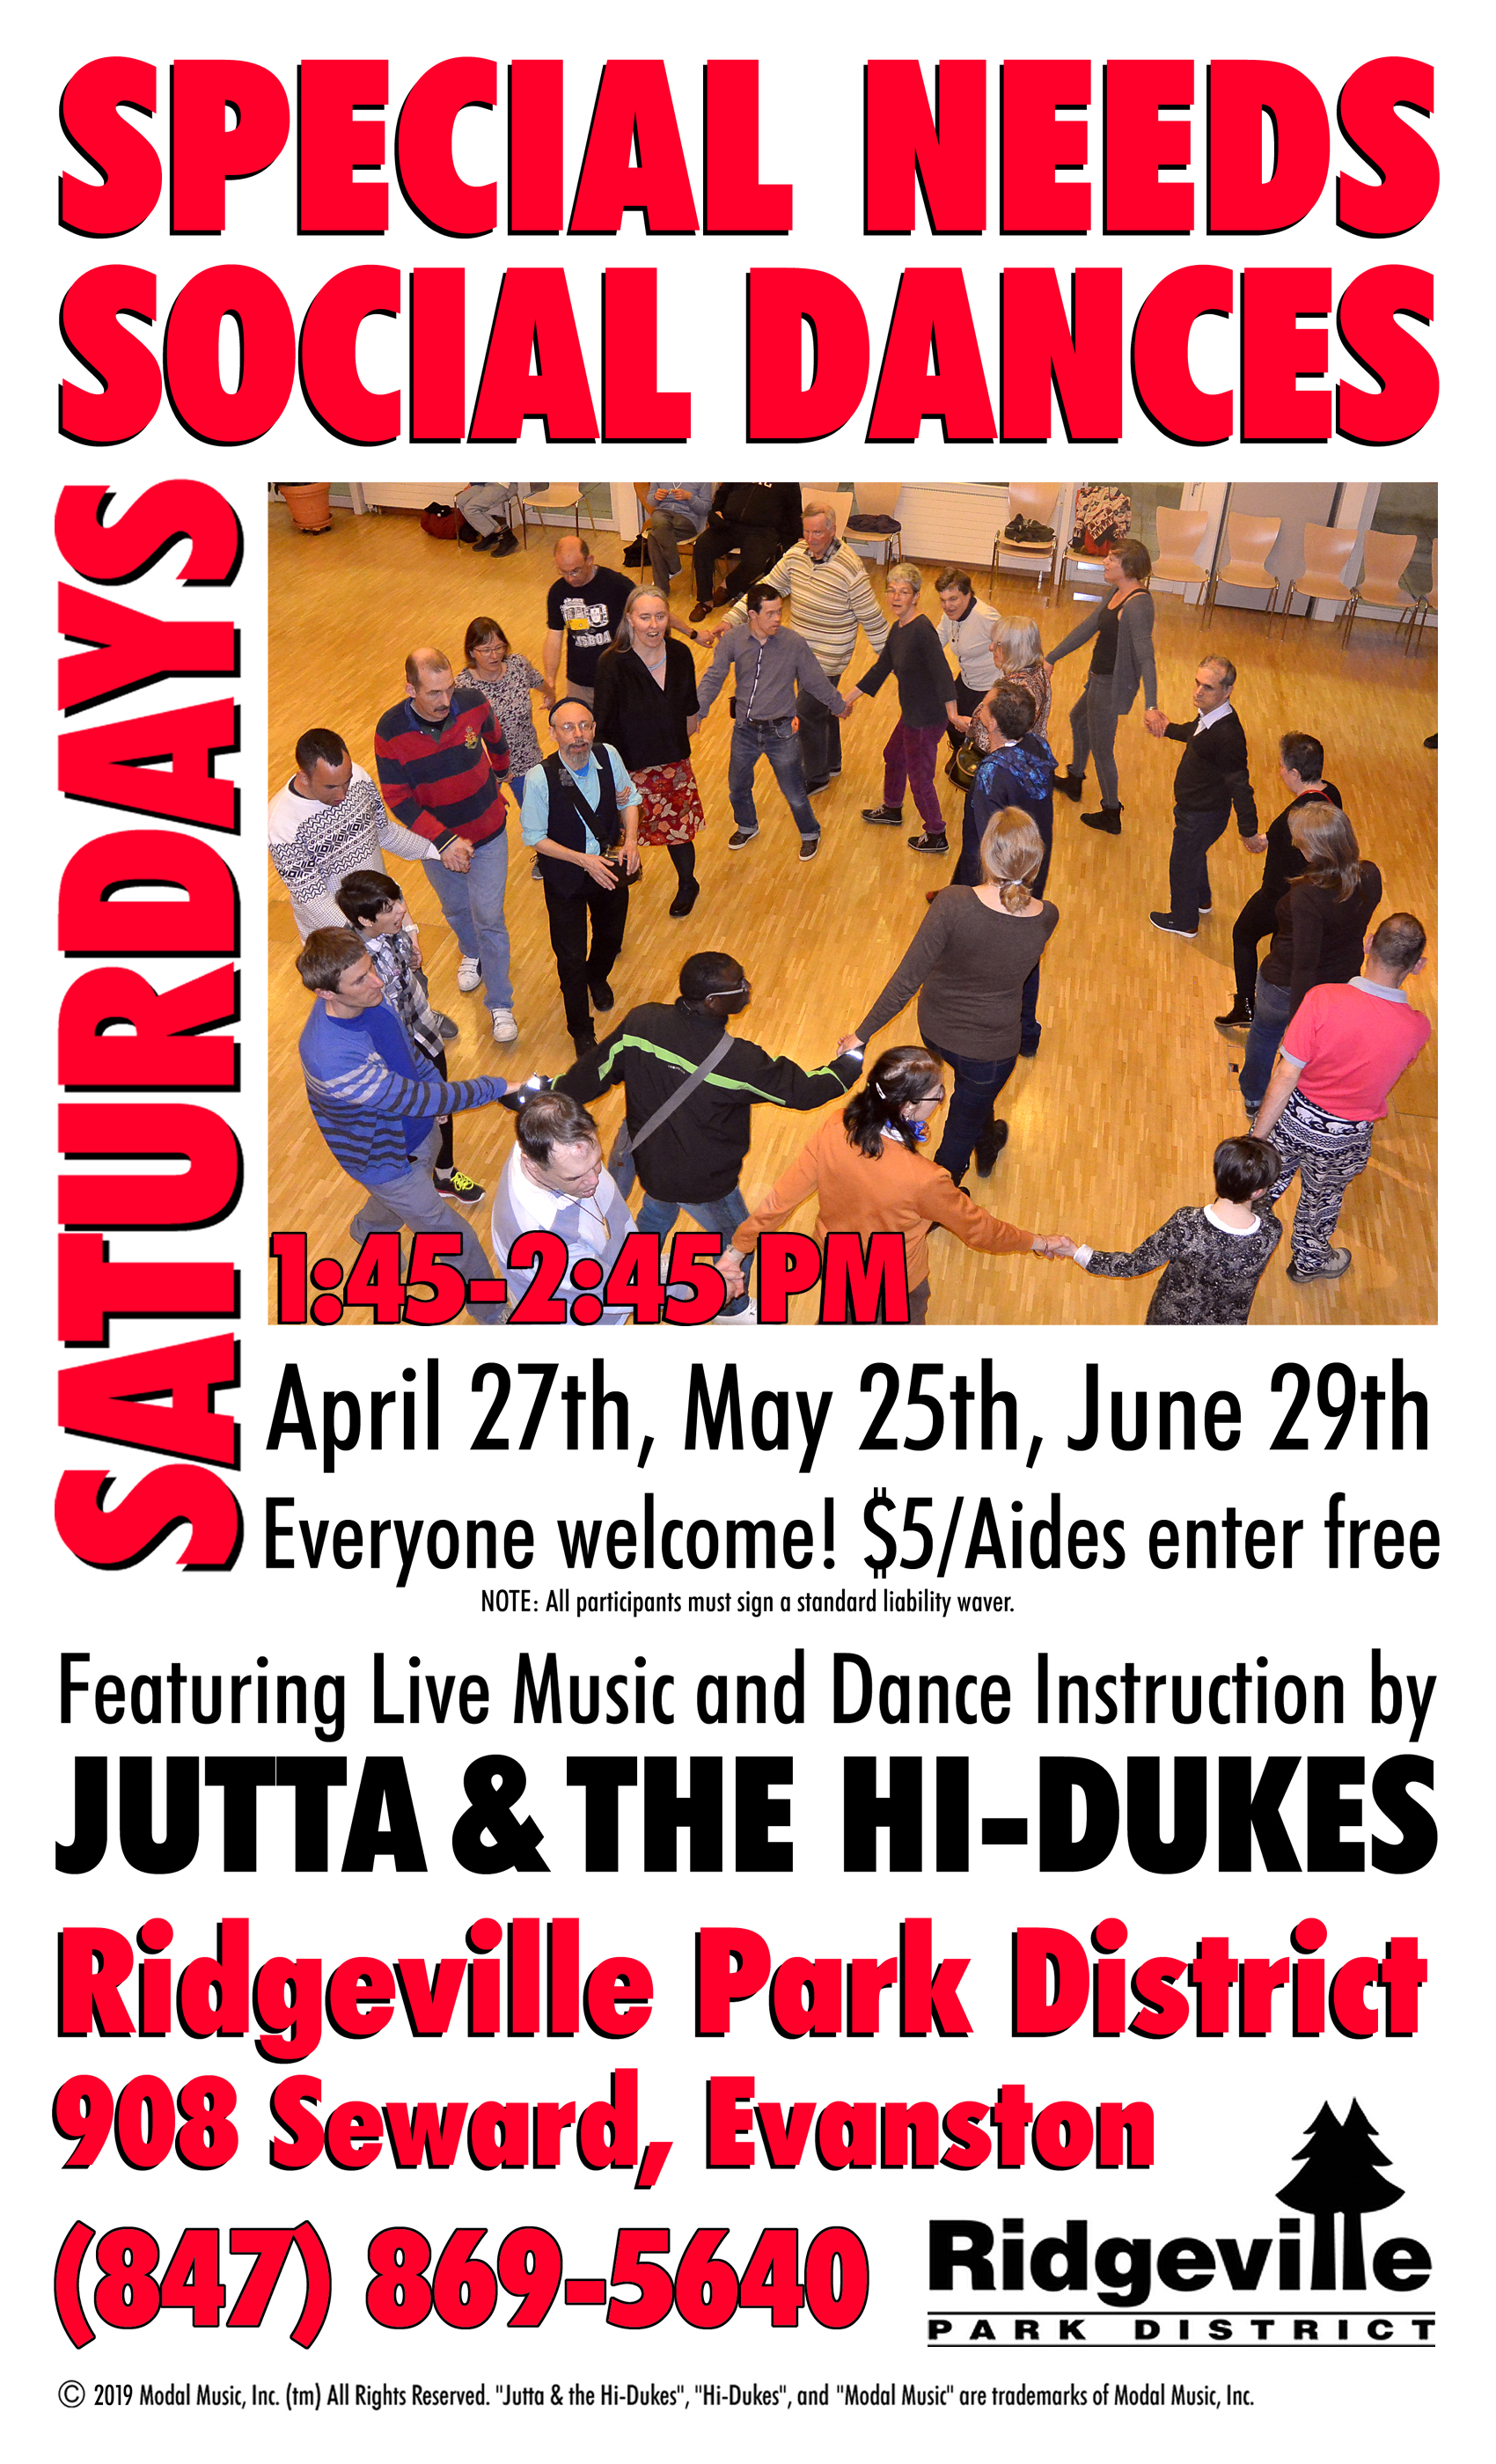 Image of the Jutta & the Hi-Dukes poster for Special Needs Saturday social dance program PDF file. Click to download the printable PDF file for the Jutta & the Hi-Dukes poster for Special Needs Saturday social dance program. Copyright 2019, Modal Music, Inc. (tm). All rights reserved.